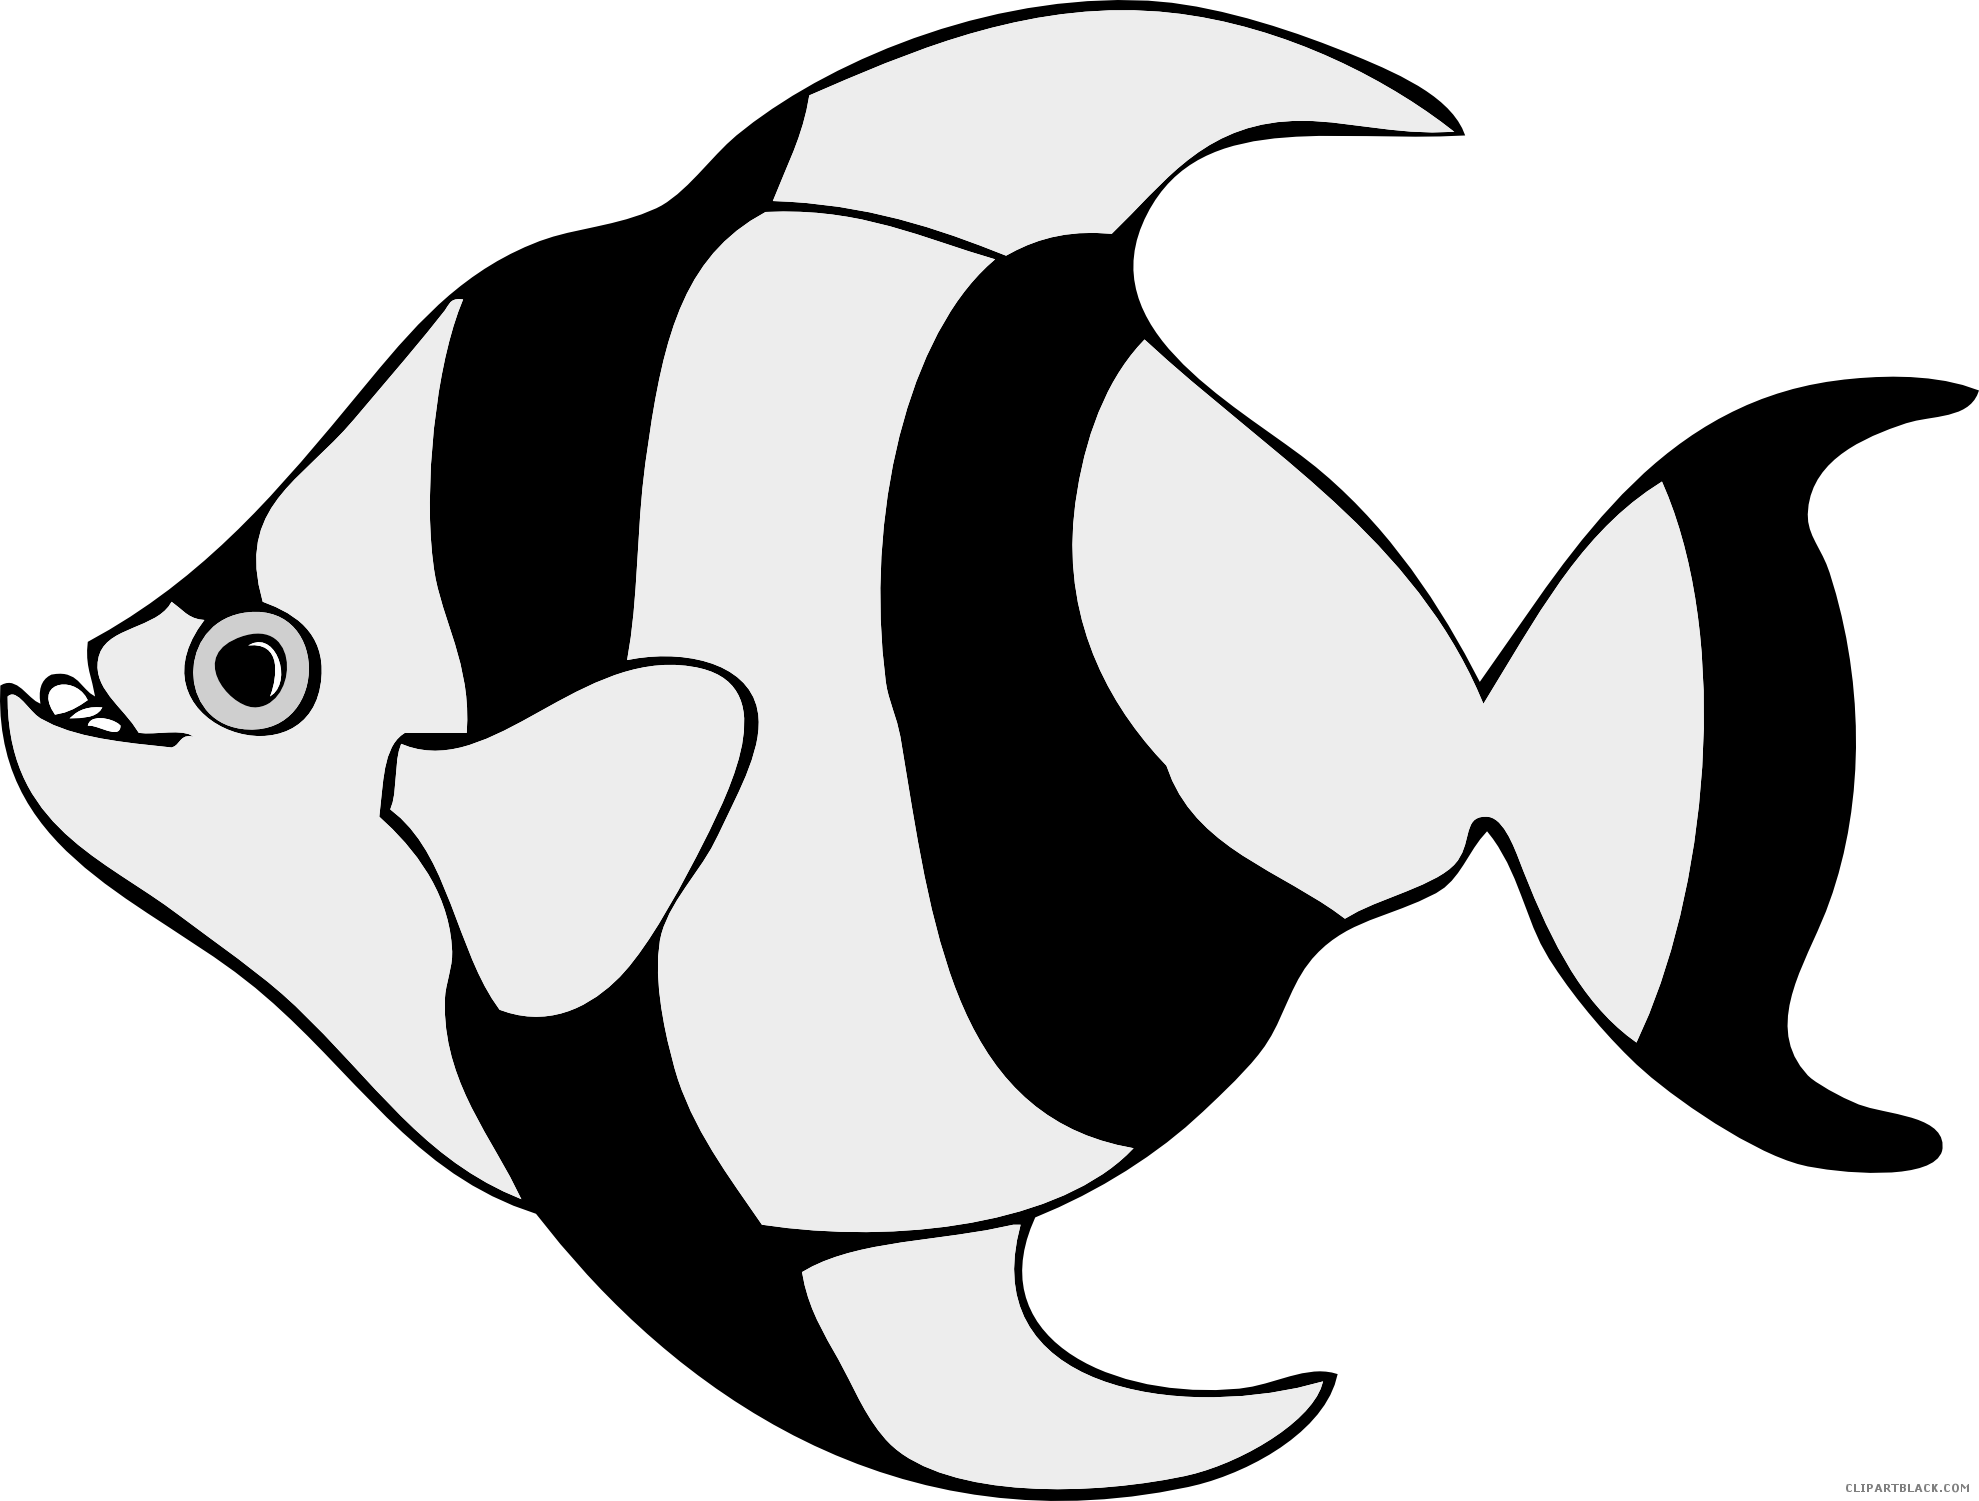 Tropical fish black and white clipart png stock Tropical Fish Clipart - ClipartBlack.com png stock